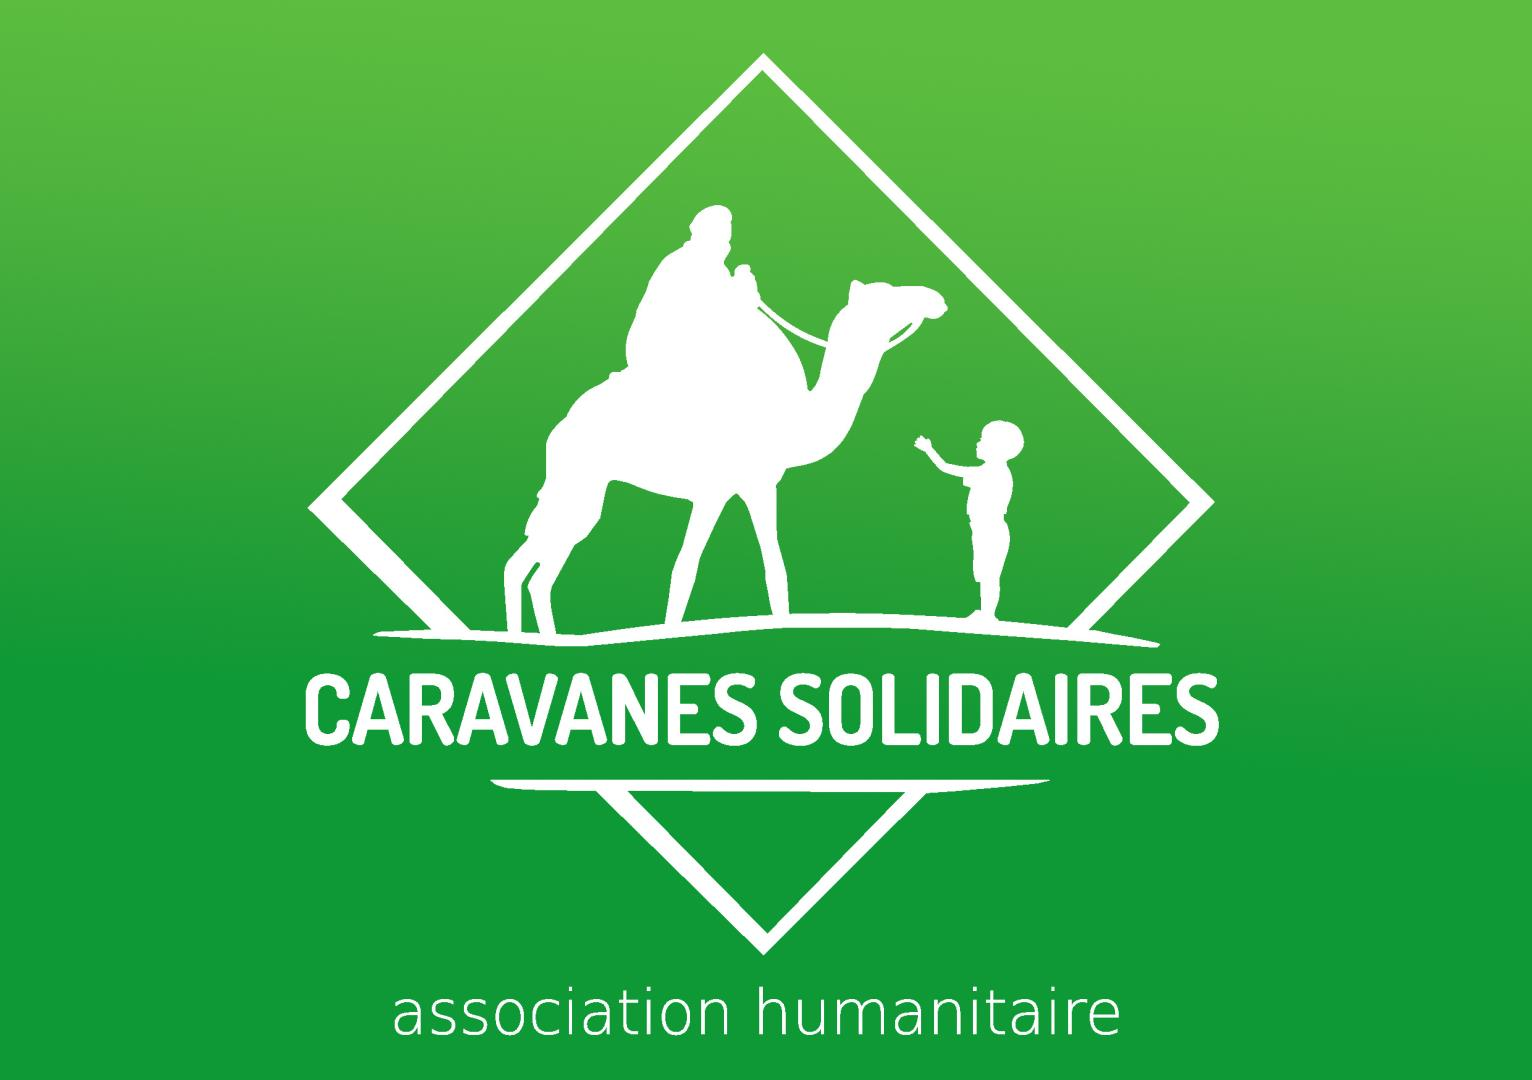 Association caravanes solidaires